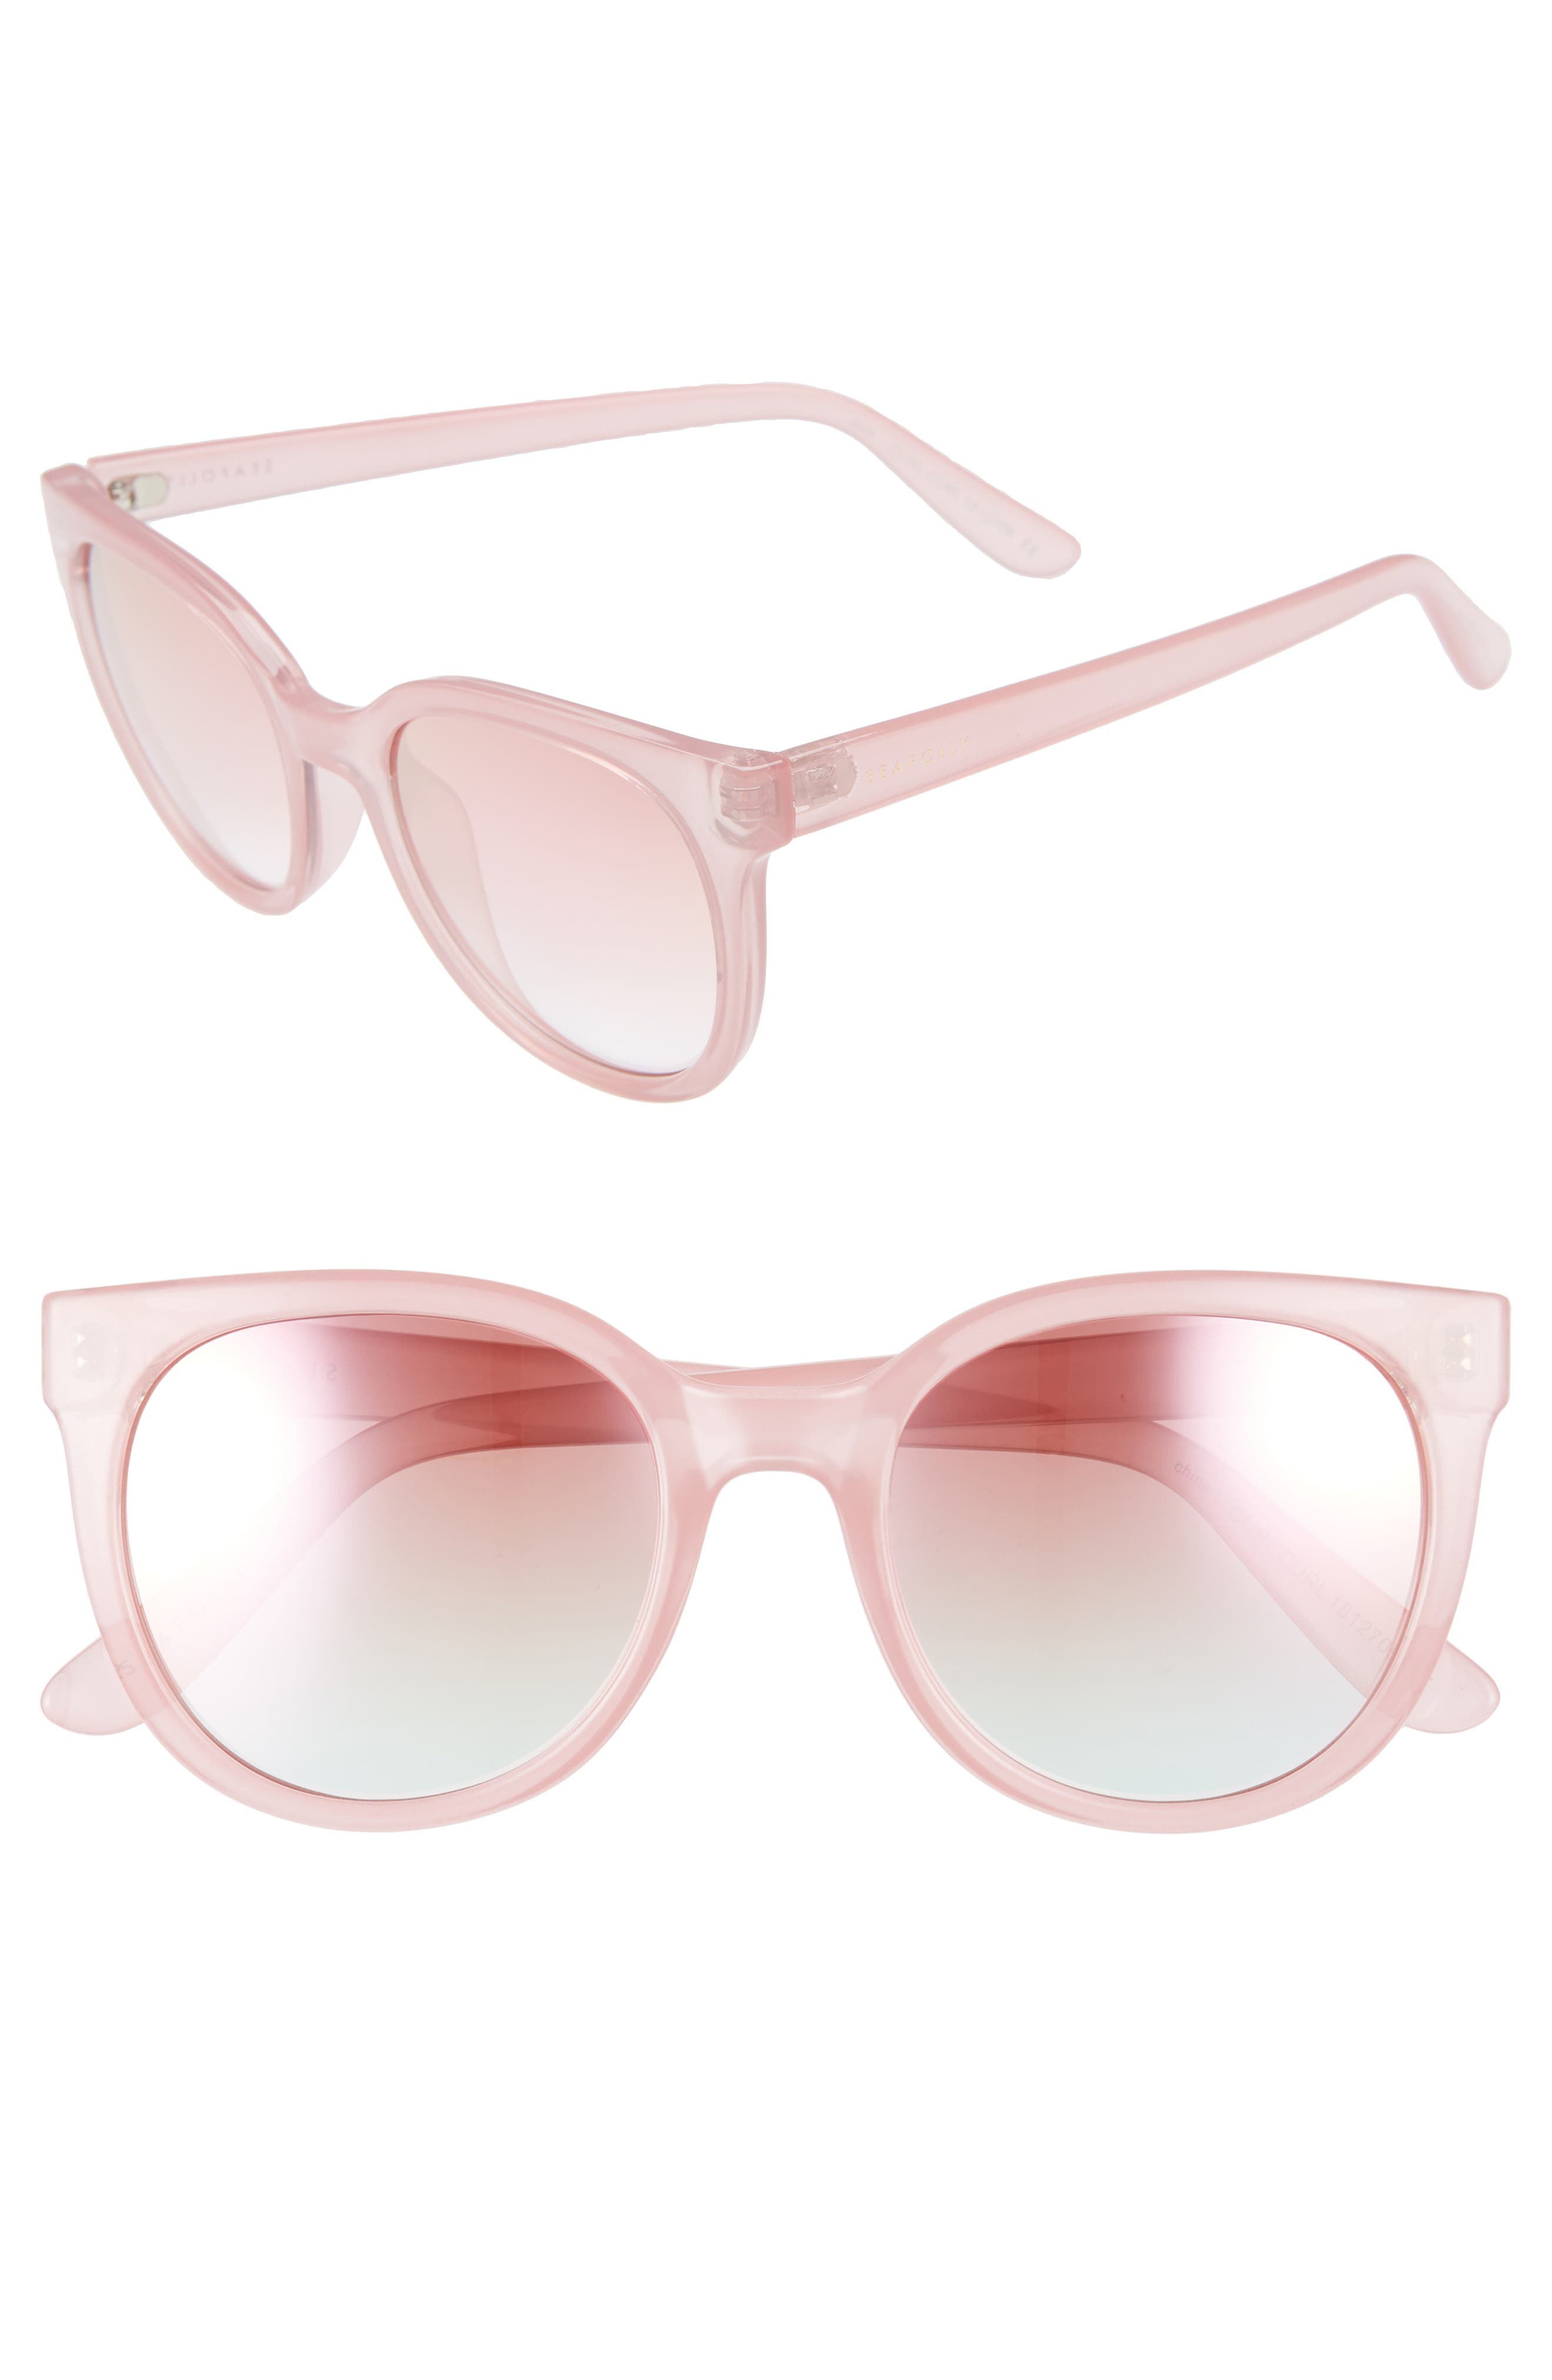 Seafolly Curl Curl 5m Sunglasses - Candy Pink/ Pink